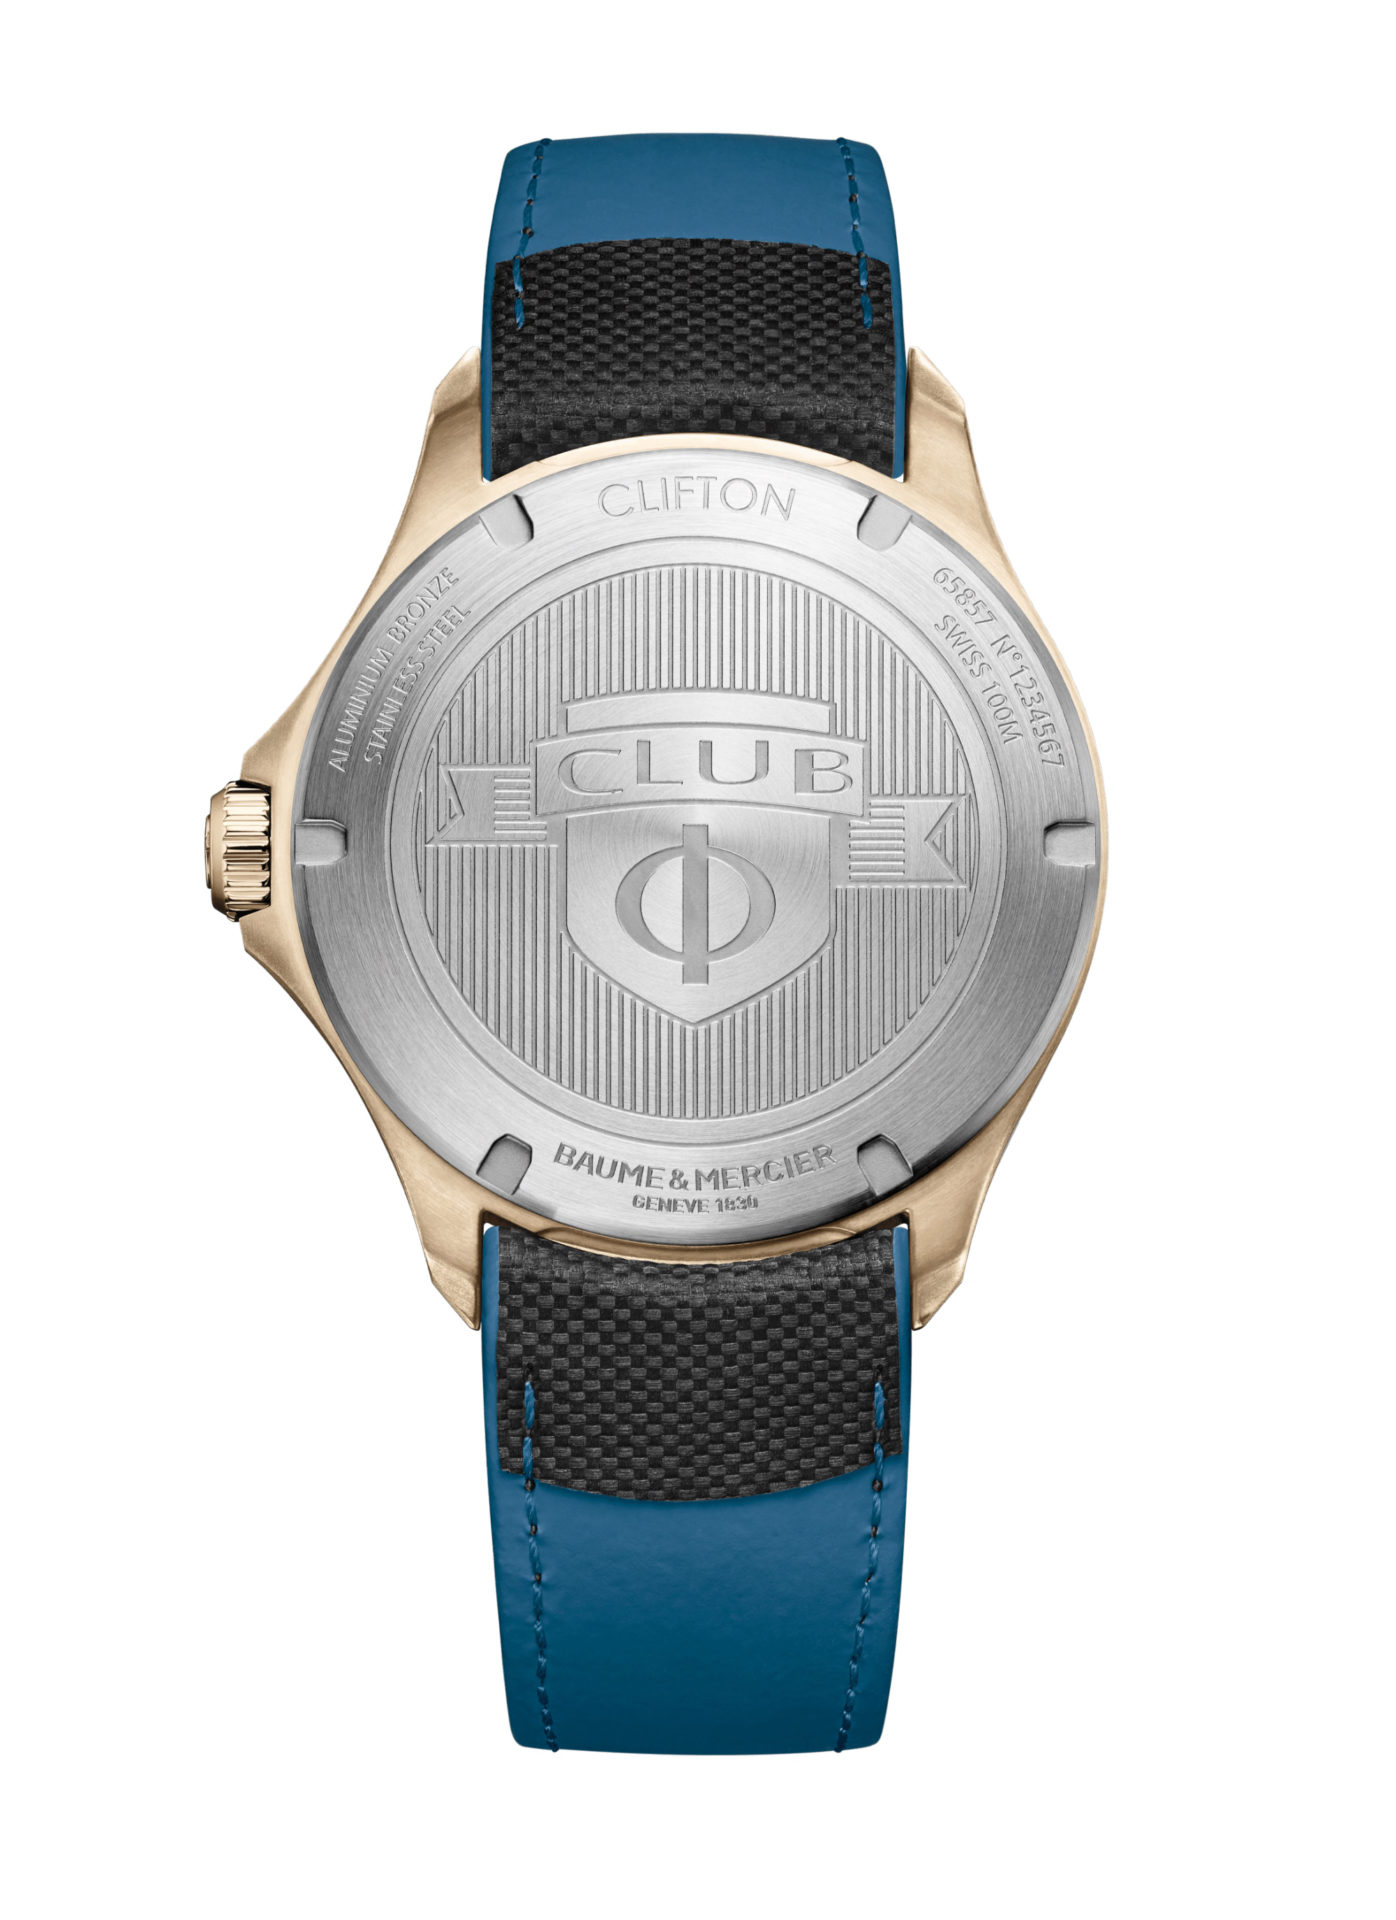 Baume-&-Mercier-Clifton-Club-10500*-Hall-of-Time